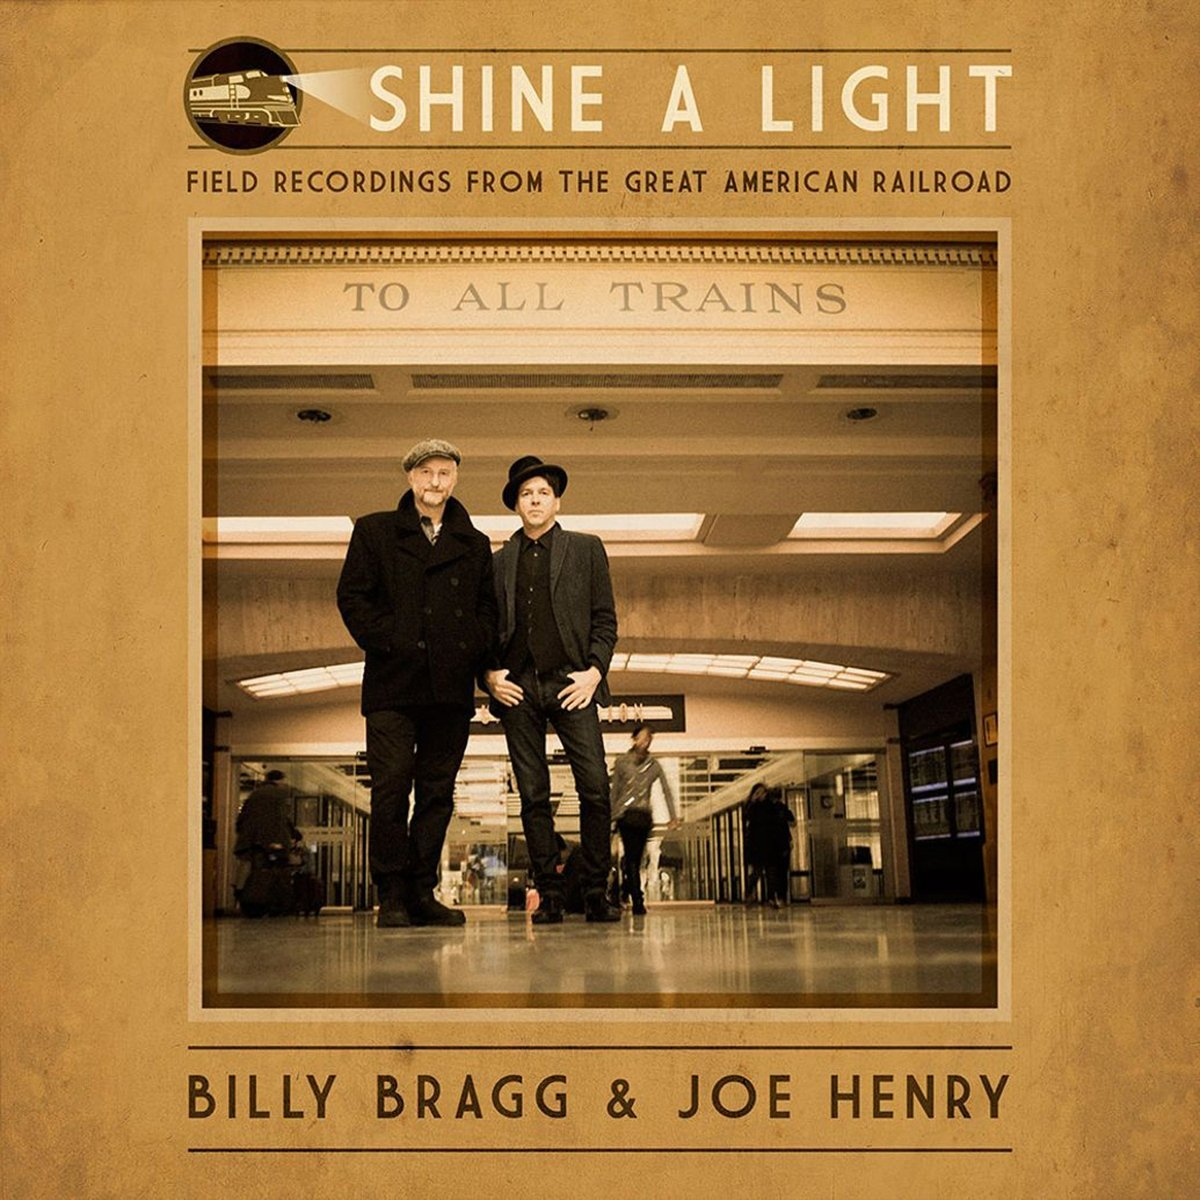 Vinilo : Billy Bragg & Joe Henry - Shine A Light: Field Recordings From The Great American Railroad (LP Vinyl)